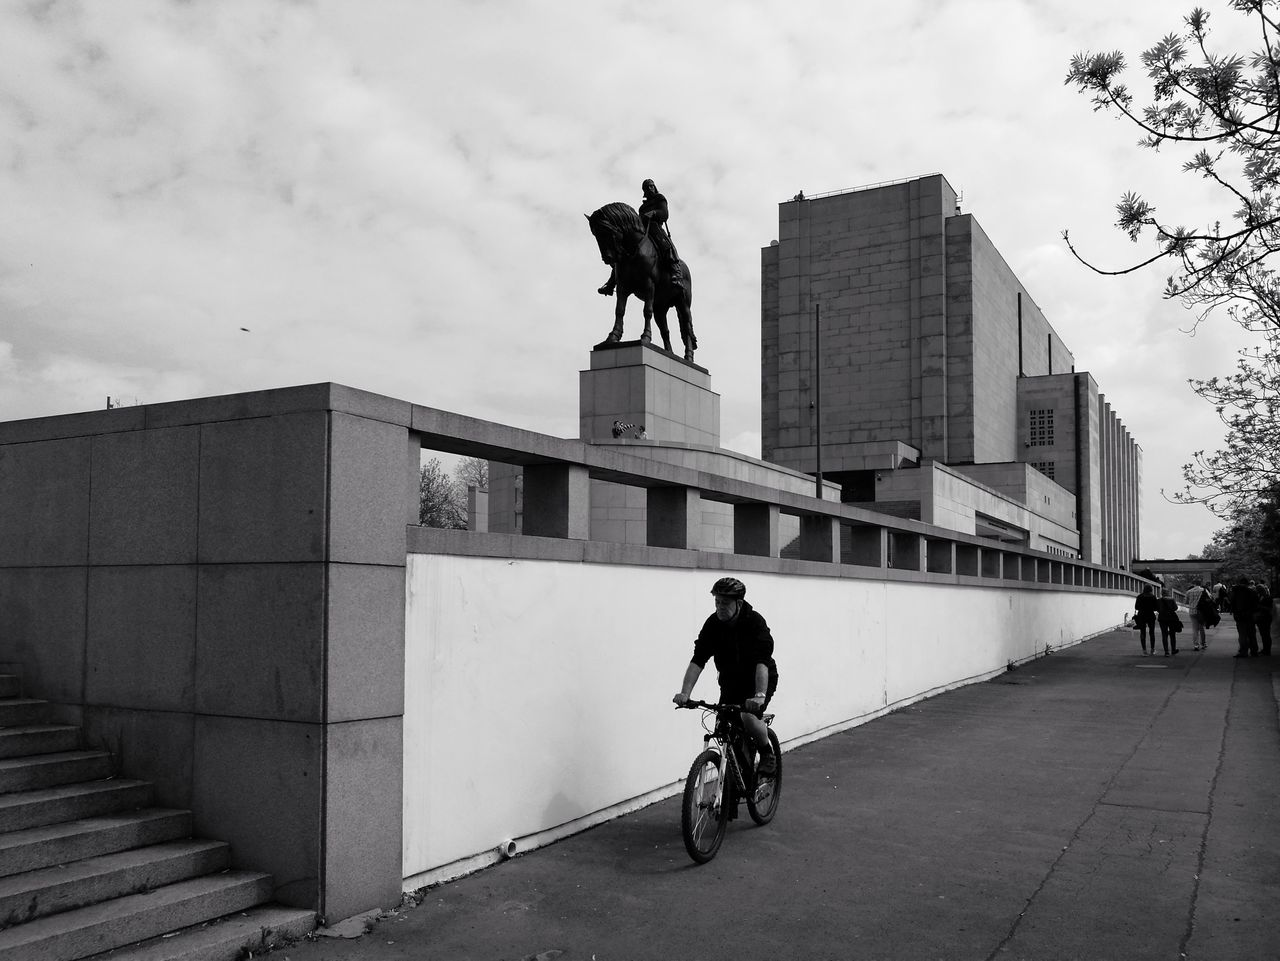 statue, architecture, art and craft, built structure, human representation, sculpture, bicycle, outdoors, day, sky, building exterior, men, real people, city, people